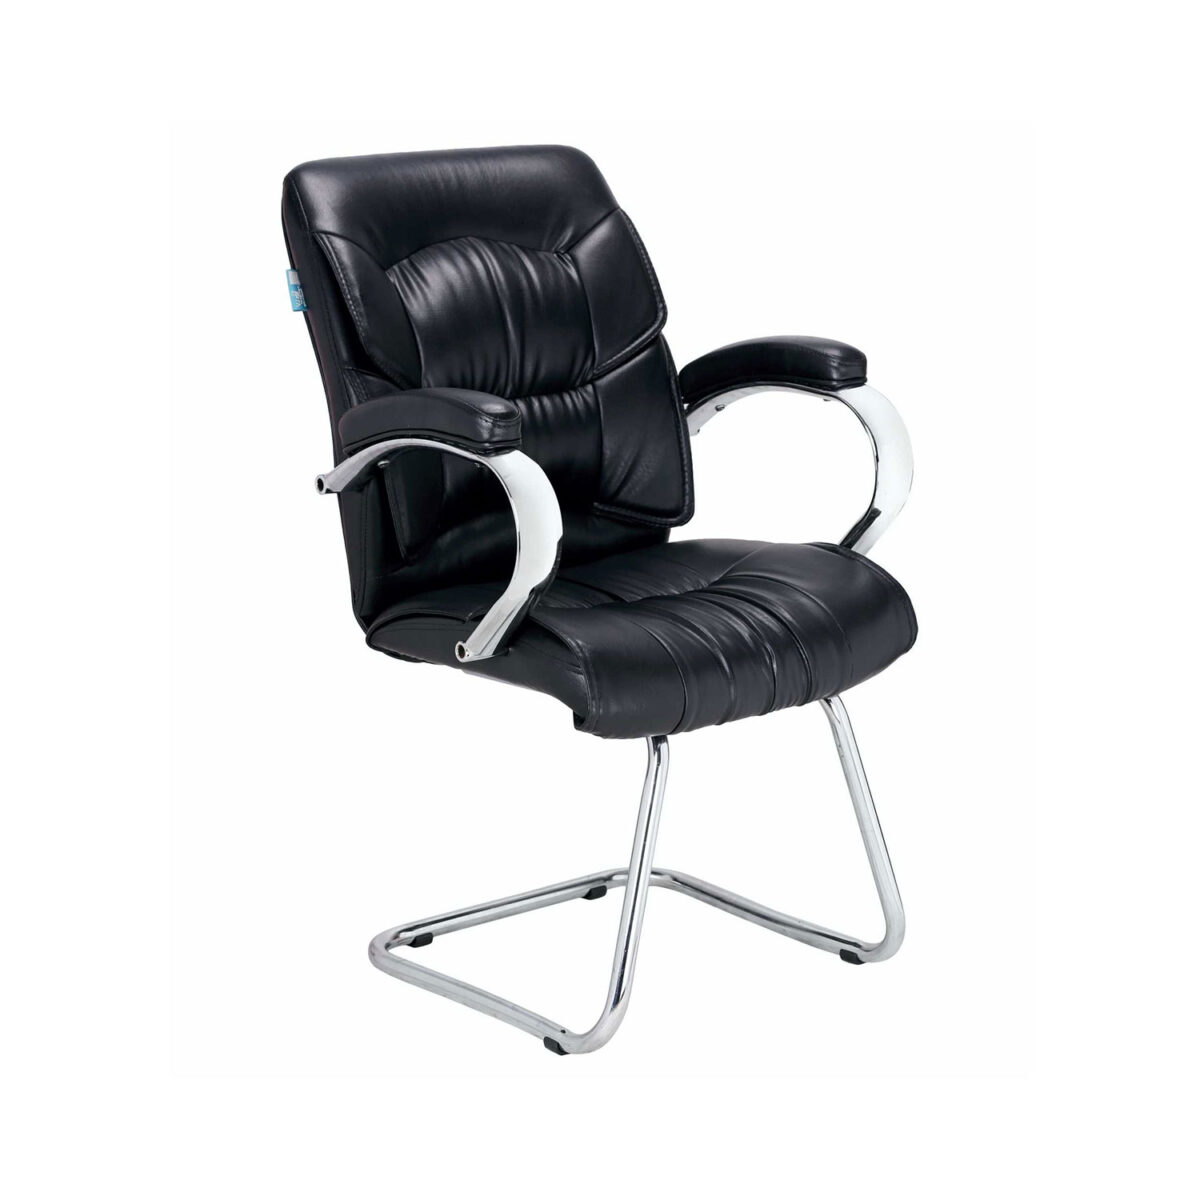 THE SIMPLEPIEL VISITOR MEDIUM BACK BLACK CHAIR IN BLACK COLOR